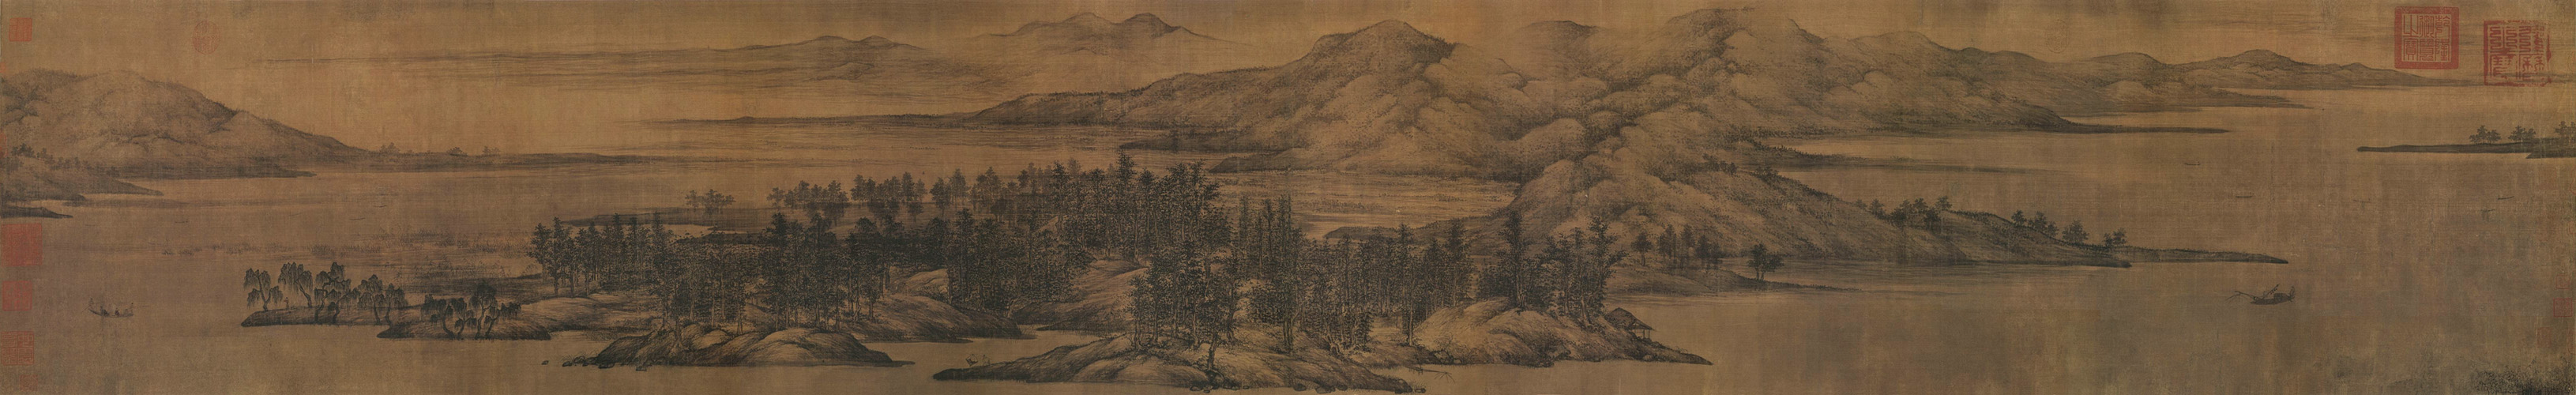 Dong Yuan | Chinese Painting | China Online Museum